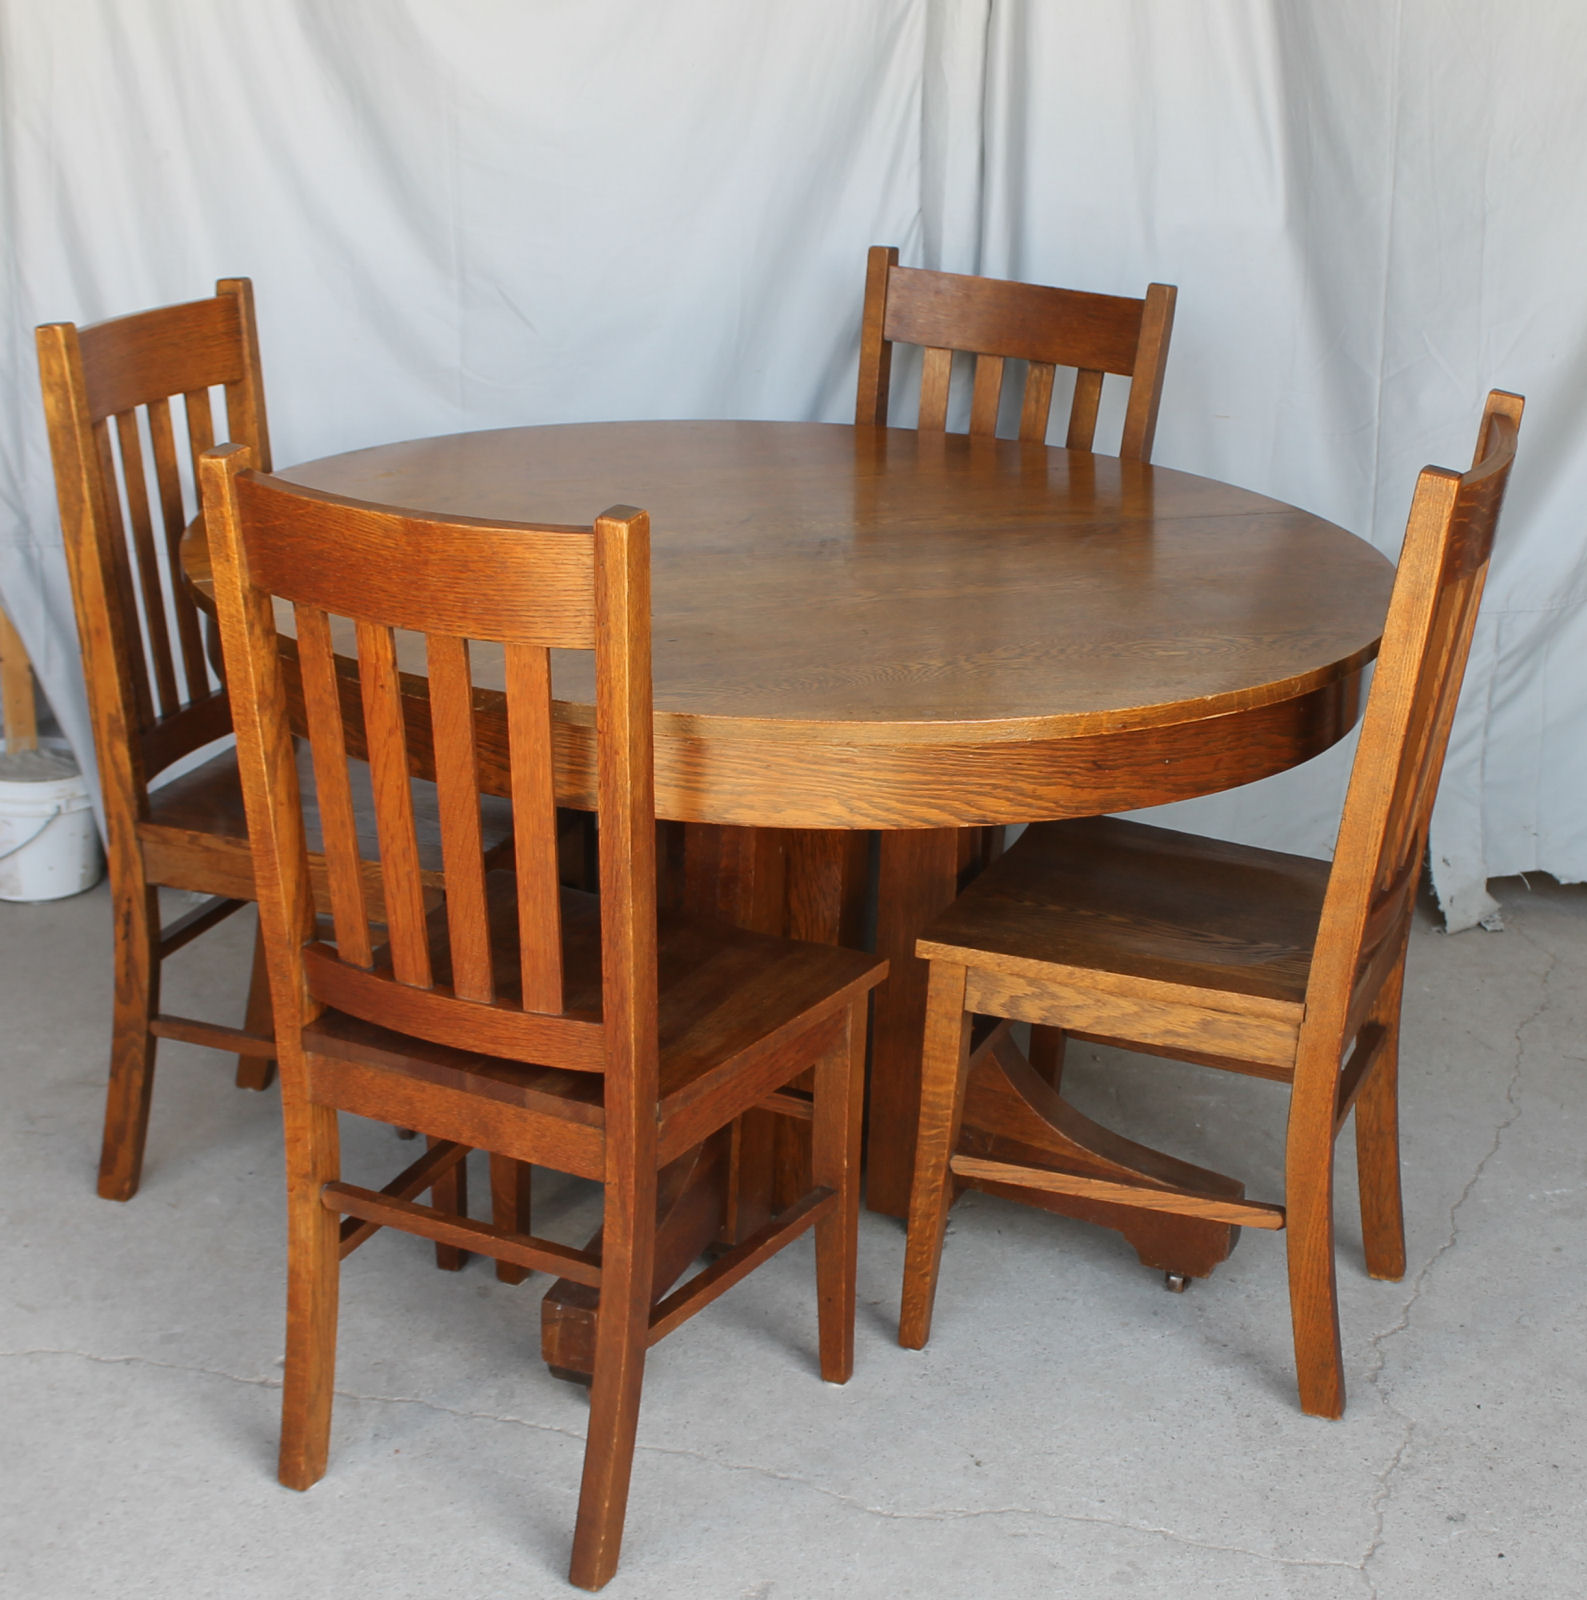 Mission Round Table.Antique Mission Style Round Oak Table With 4 Leaves